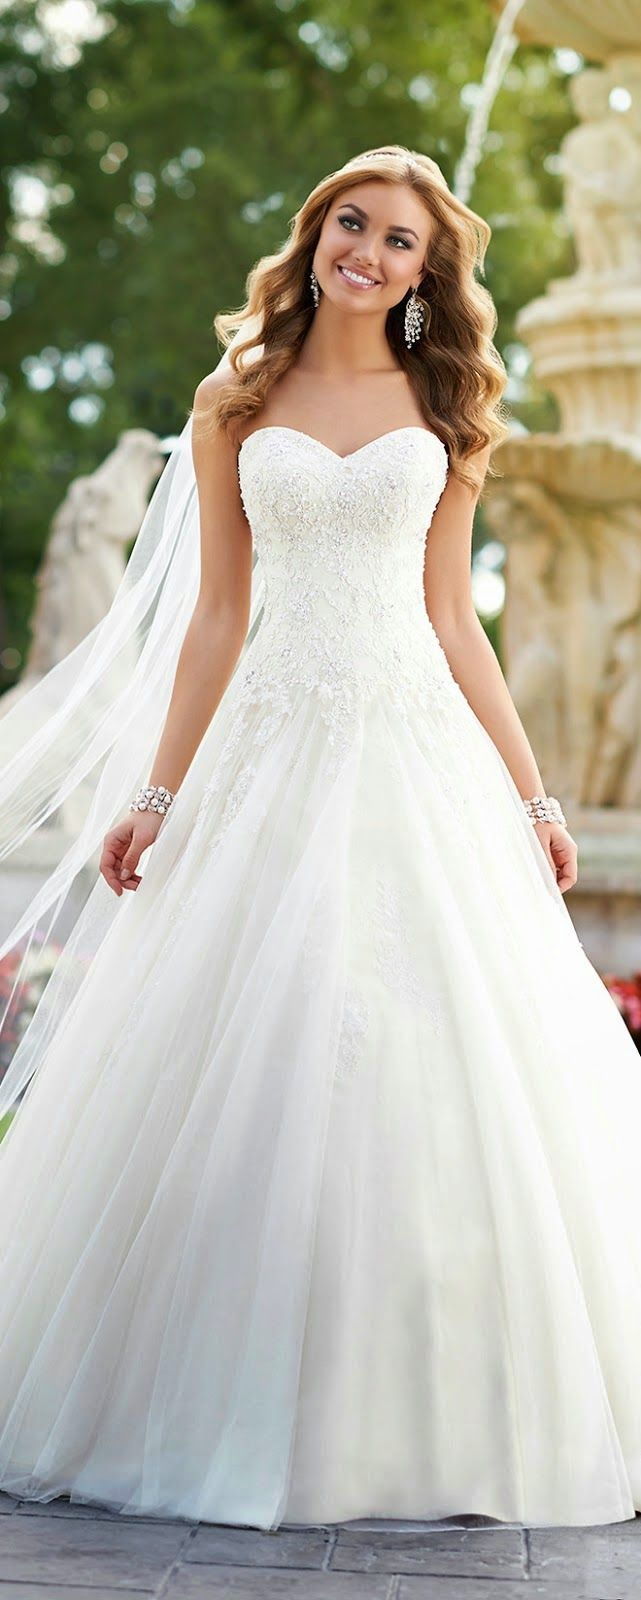 70 best wedding dress images on pinterest gown wedding wedding best wedding dresses of 2014 junglespirit Gallery